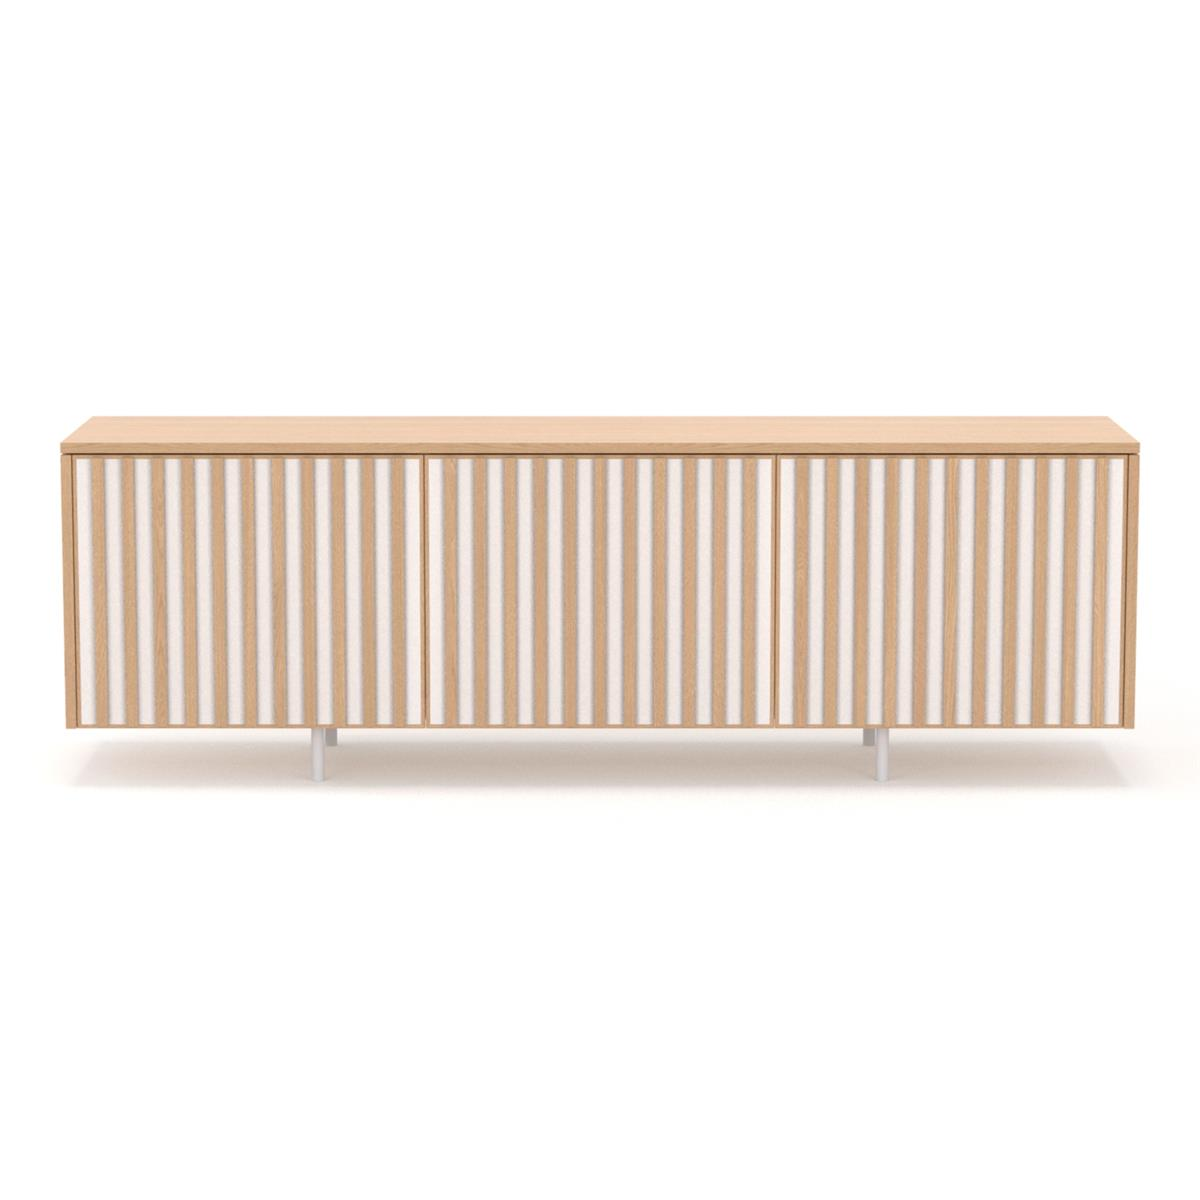 dB Silent Sideboard - White Oiled Oak & White